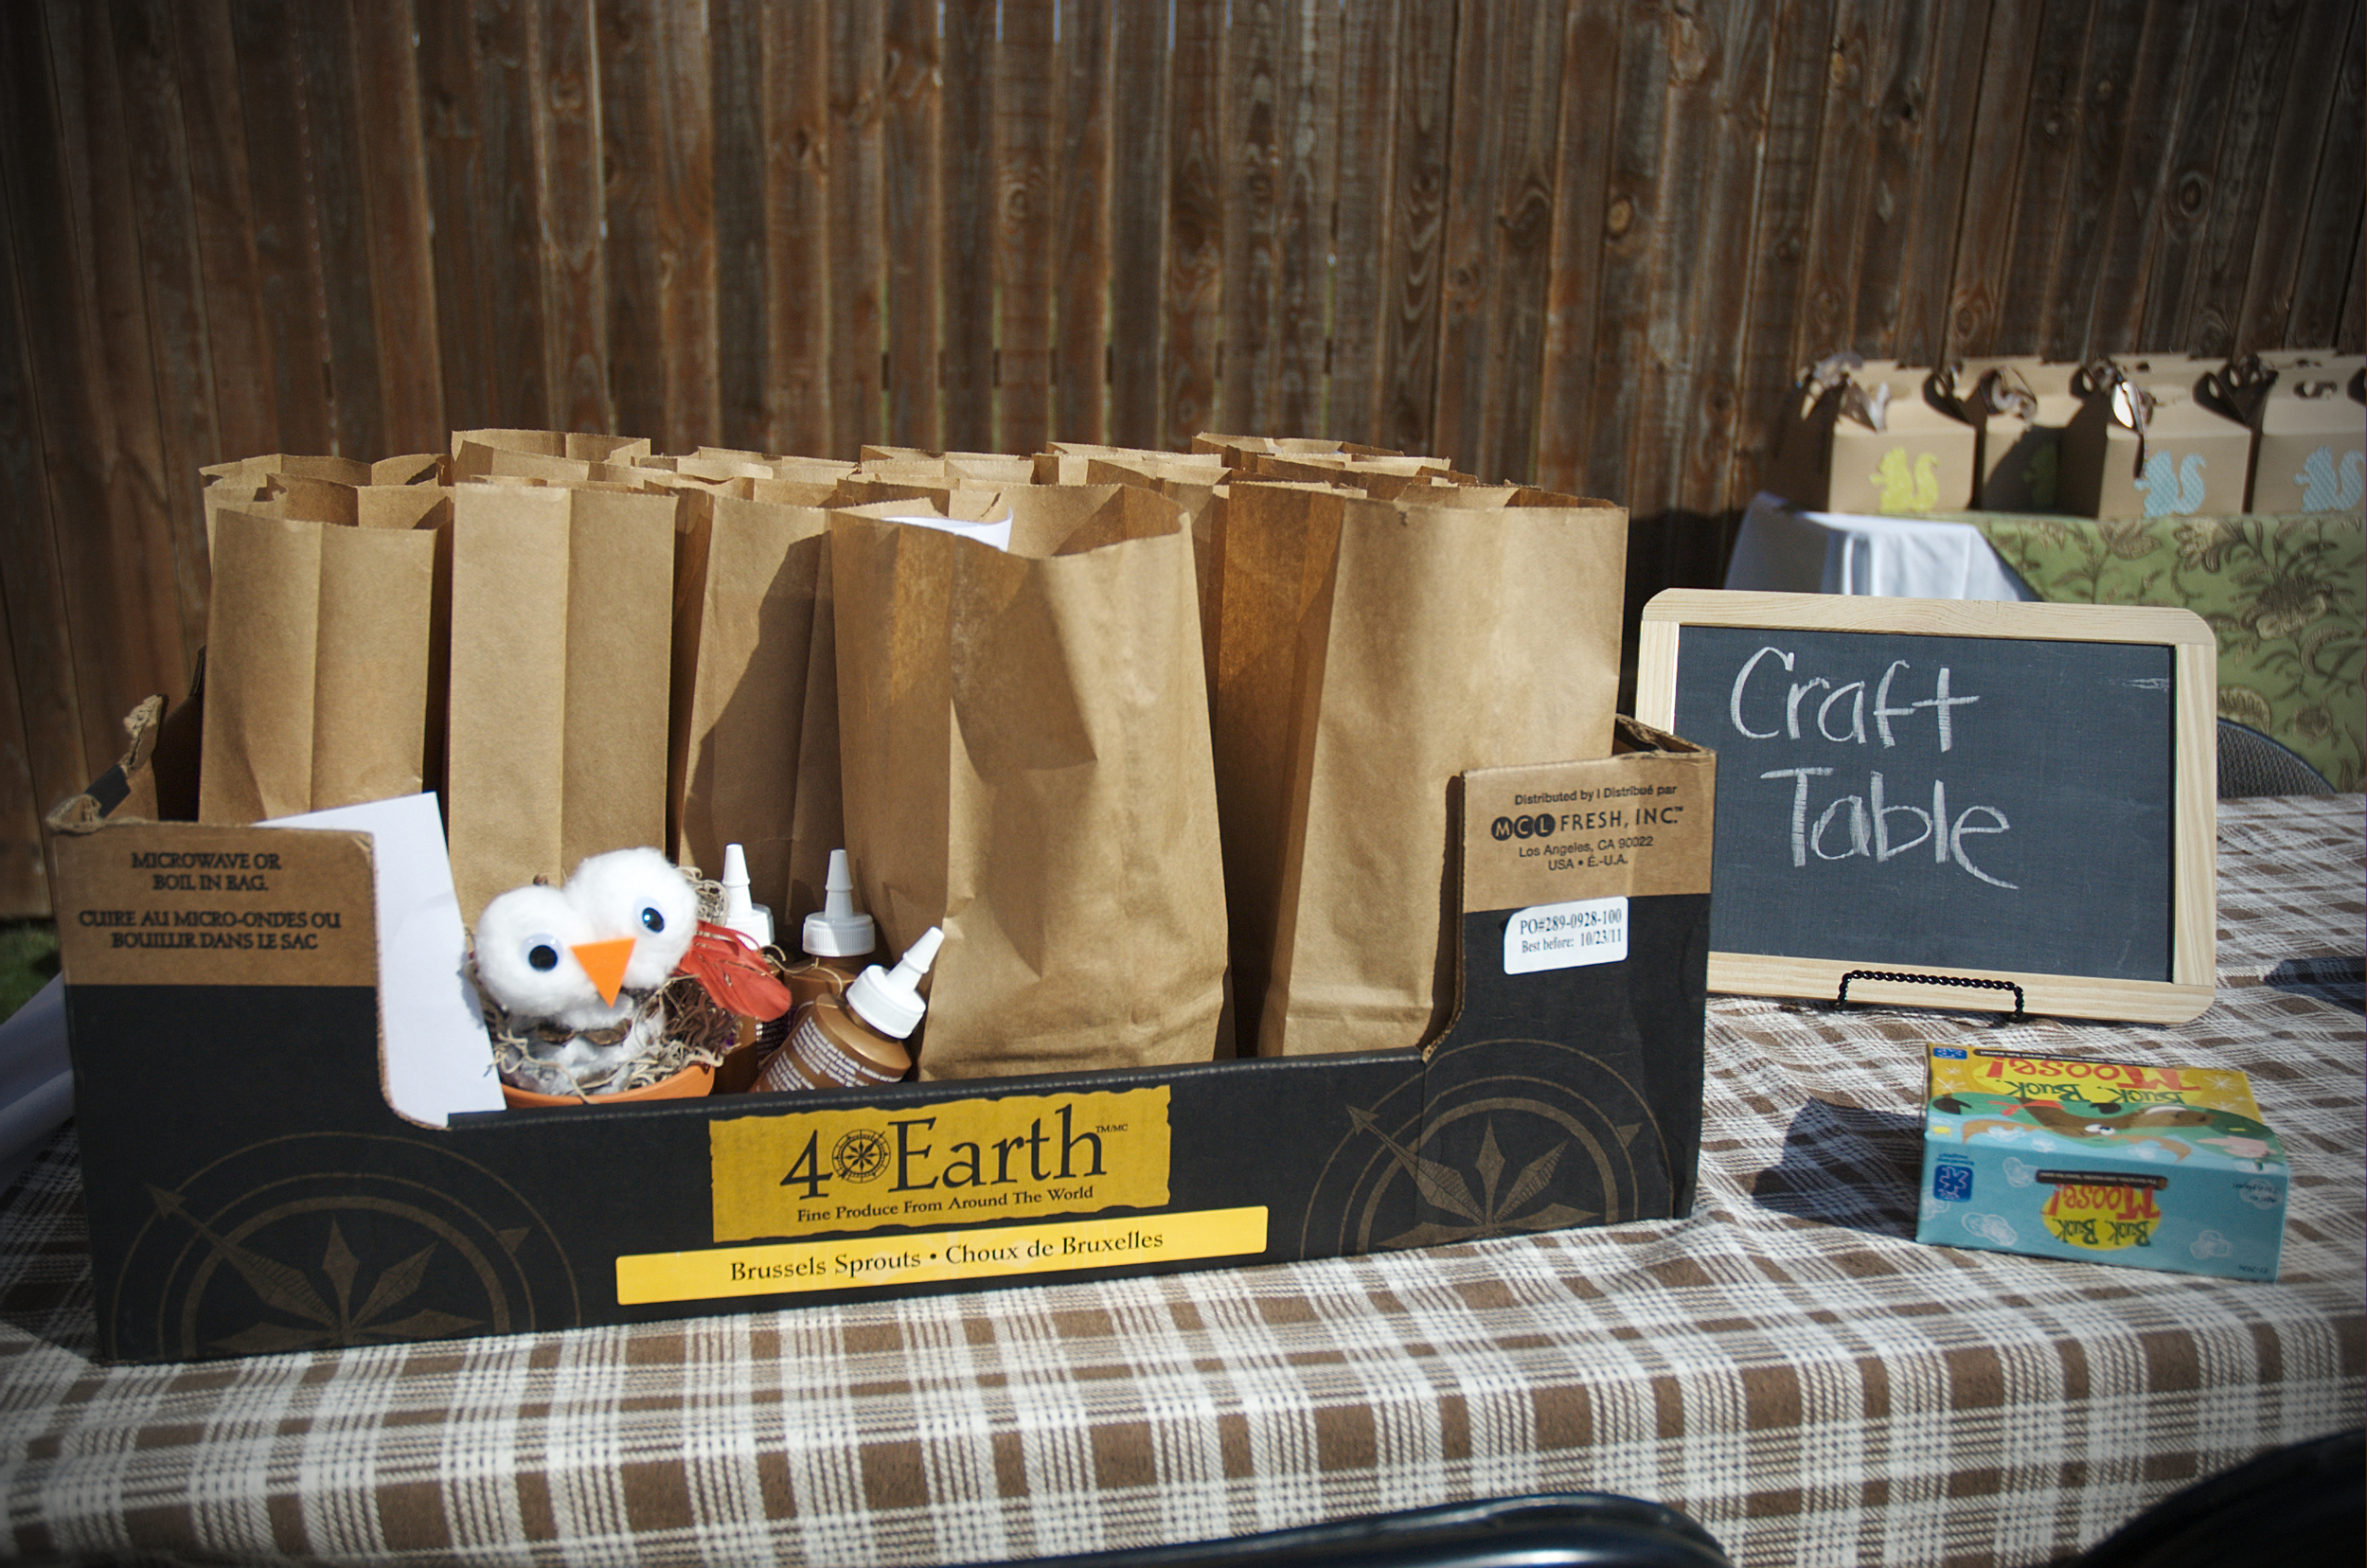 I knew with all of the activities happening at the party that many of the kids might not have time to actually sit down and make the entire project.  I packaged each project into a paper bag and each contained its own set of instructions so they could assemble them at home!